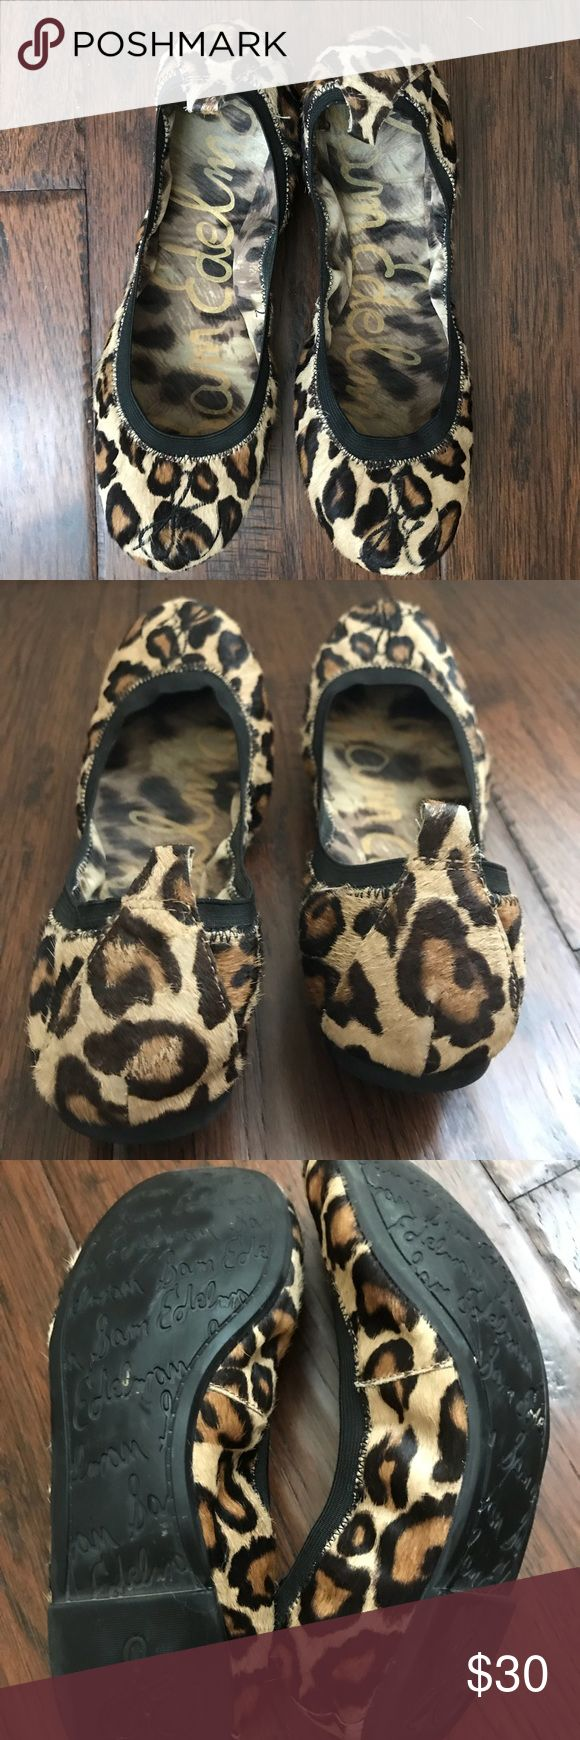 Sam Edelman leopard ballet flats Excellent condition Sam Edelman ballet flats. Only worn a few times, still looks new.  Very comfortable, but runs small due to the elastic around the edge. Size 8.5 but I would suggest for 7.5-8 sizes. Sam Edelman Shoes Flats & Loafers